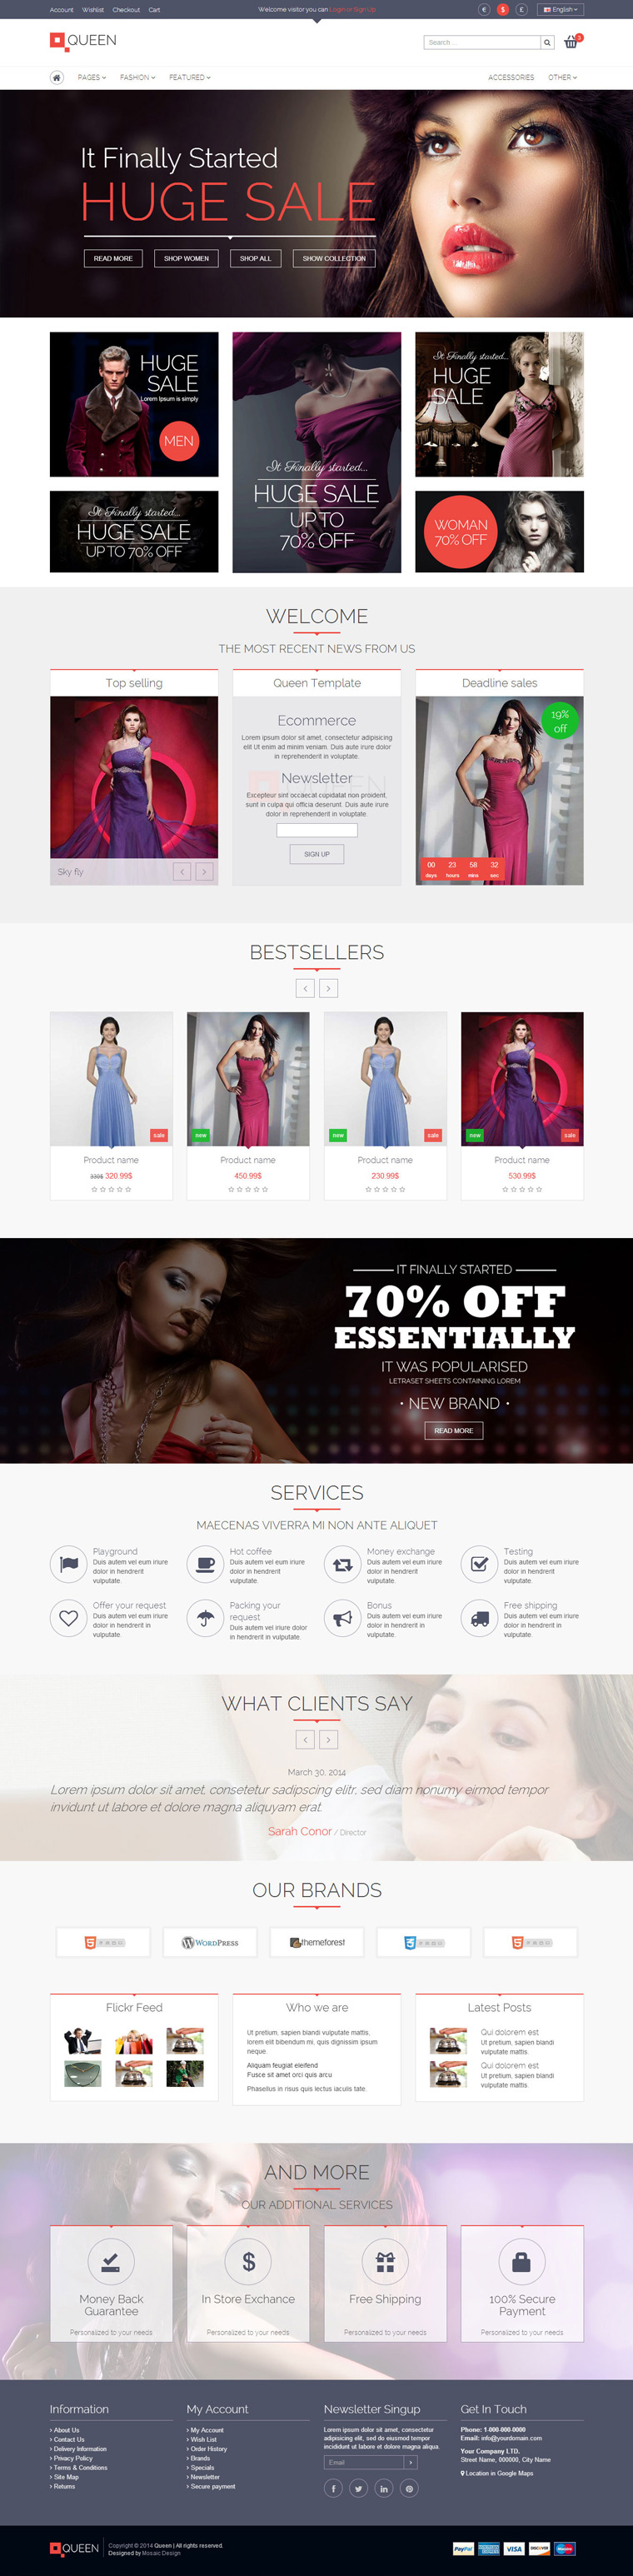 eCommerce, #fashion, clean, simple, block